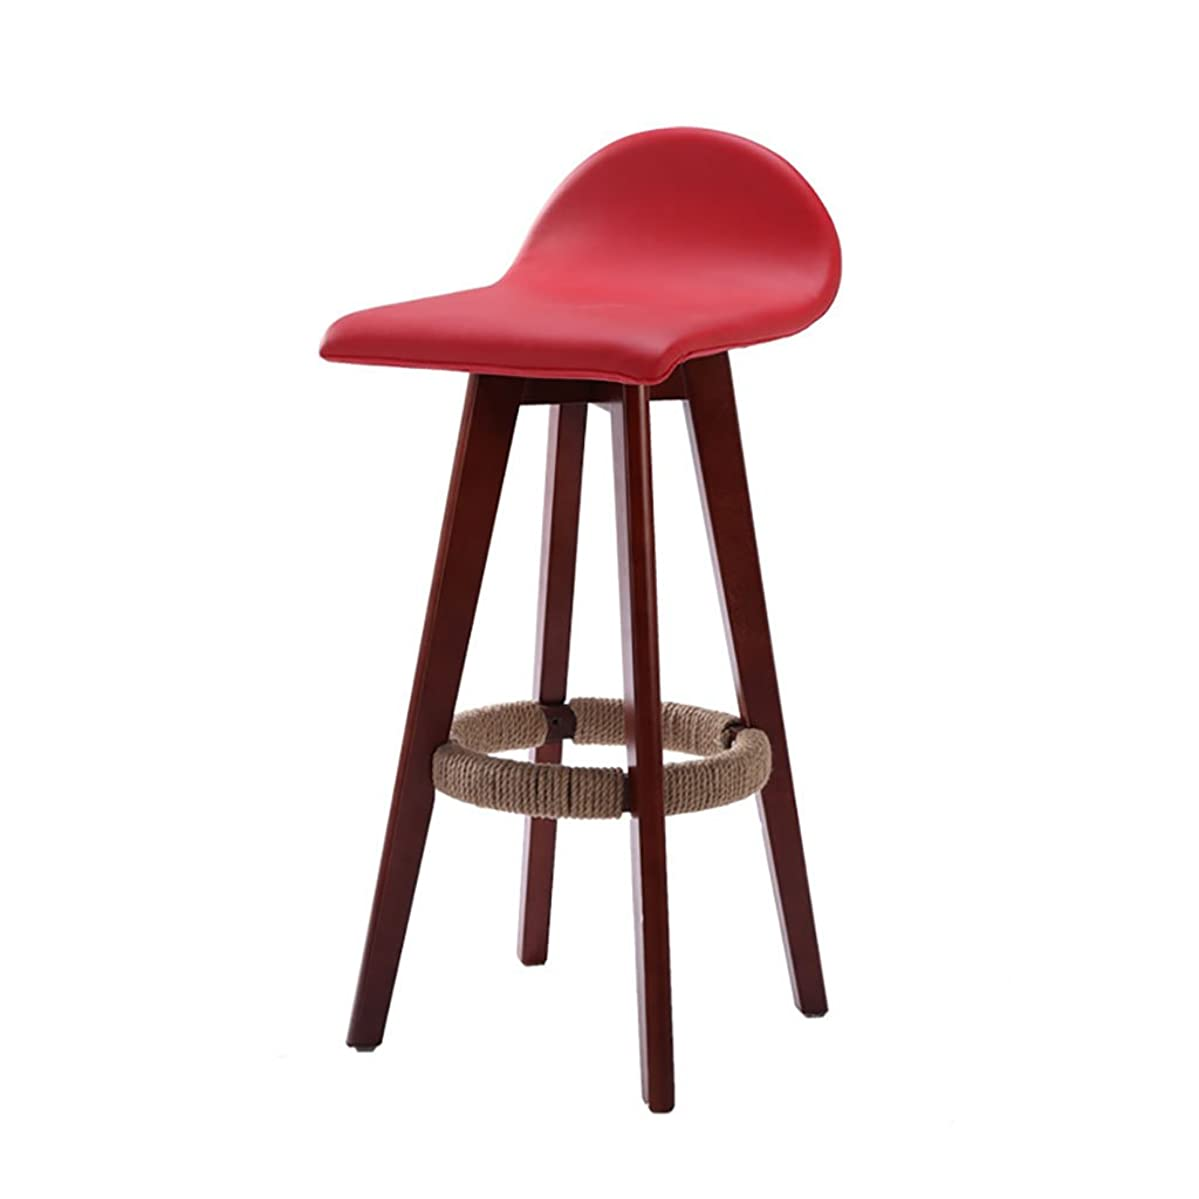 LHcy Four colors optional modern wood retro bar counter stools,Size: 88cm high Dining Chairs (Color : Red)